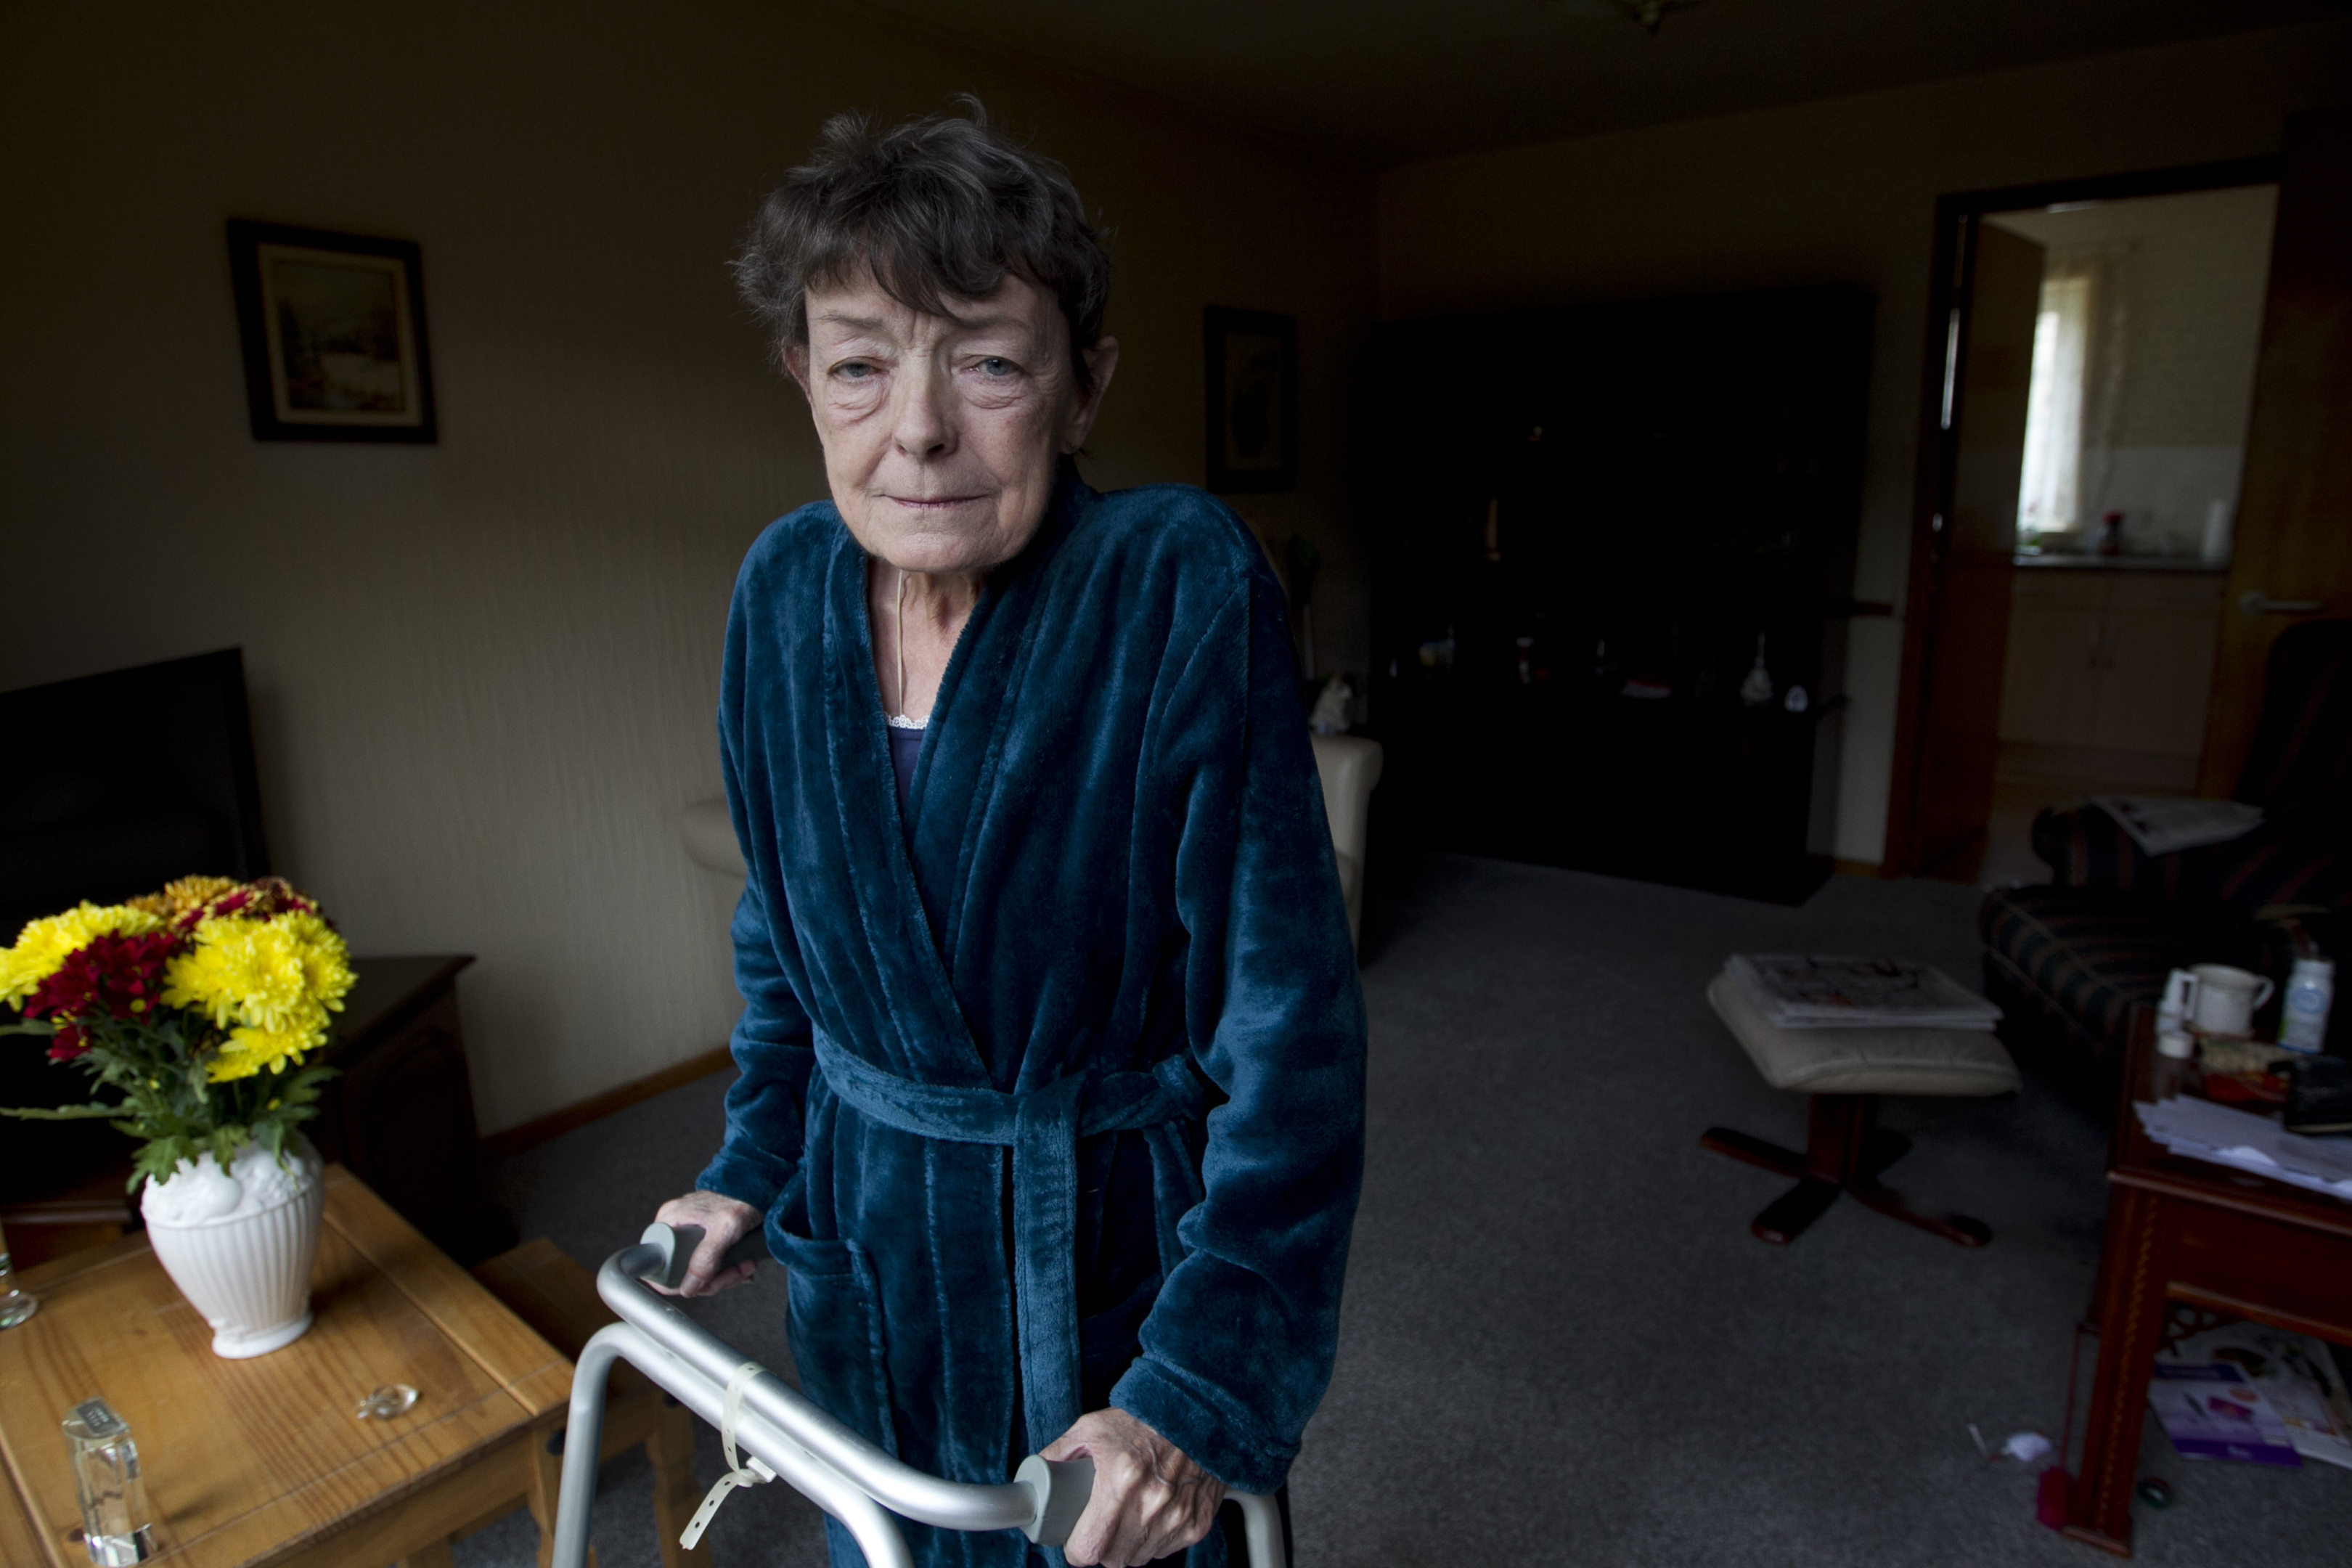 May Roberts, who lives alone, and relies on the Food Train service (Andrew Cawley / DC Thomson)